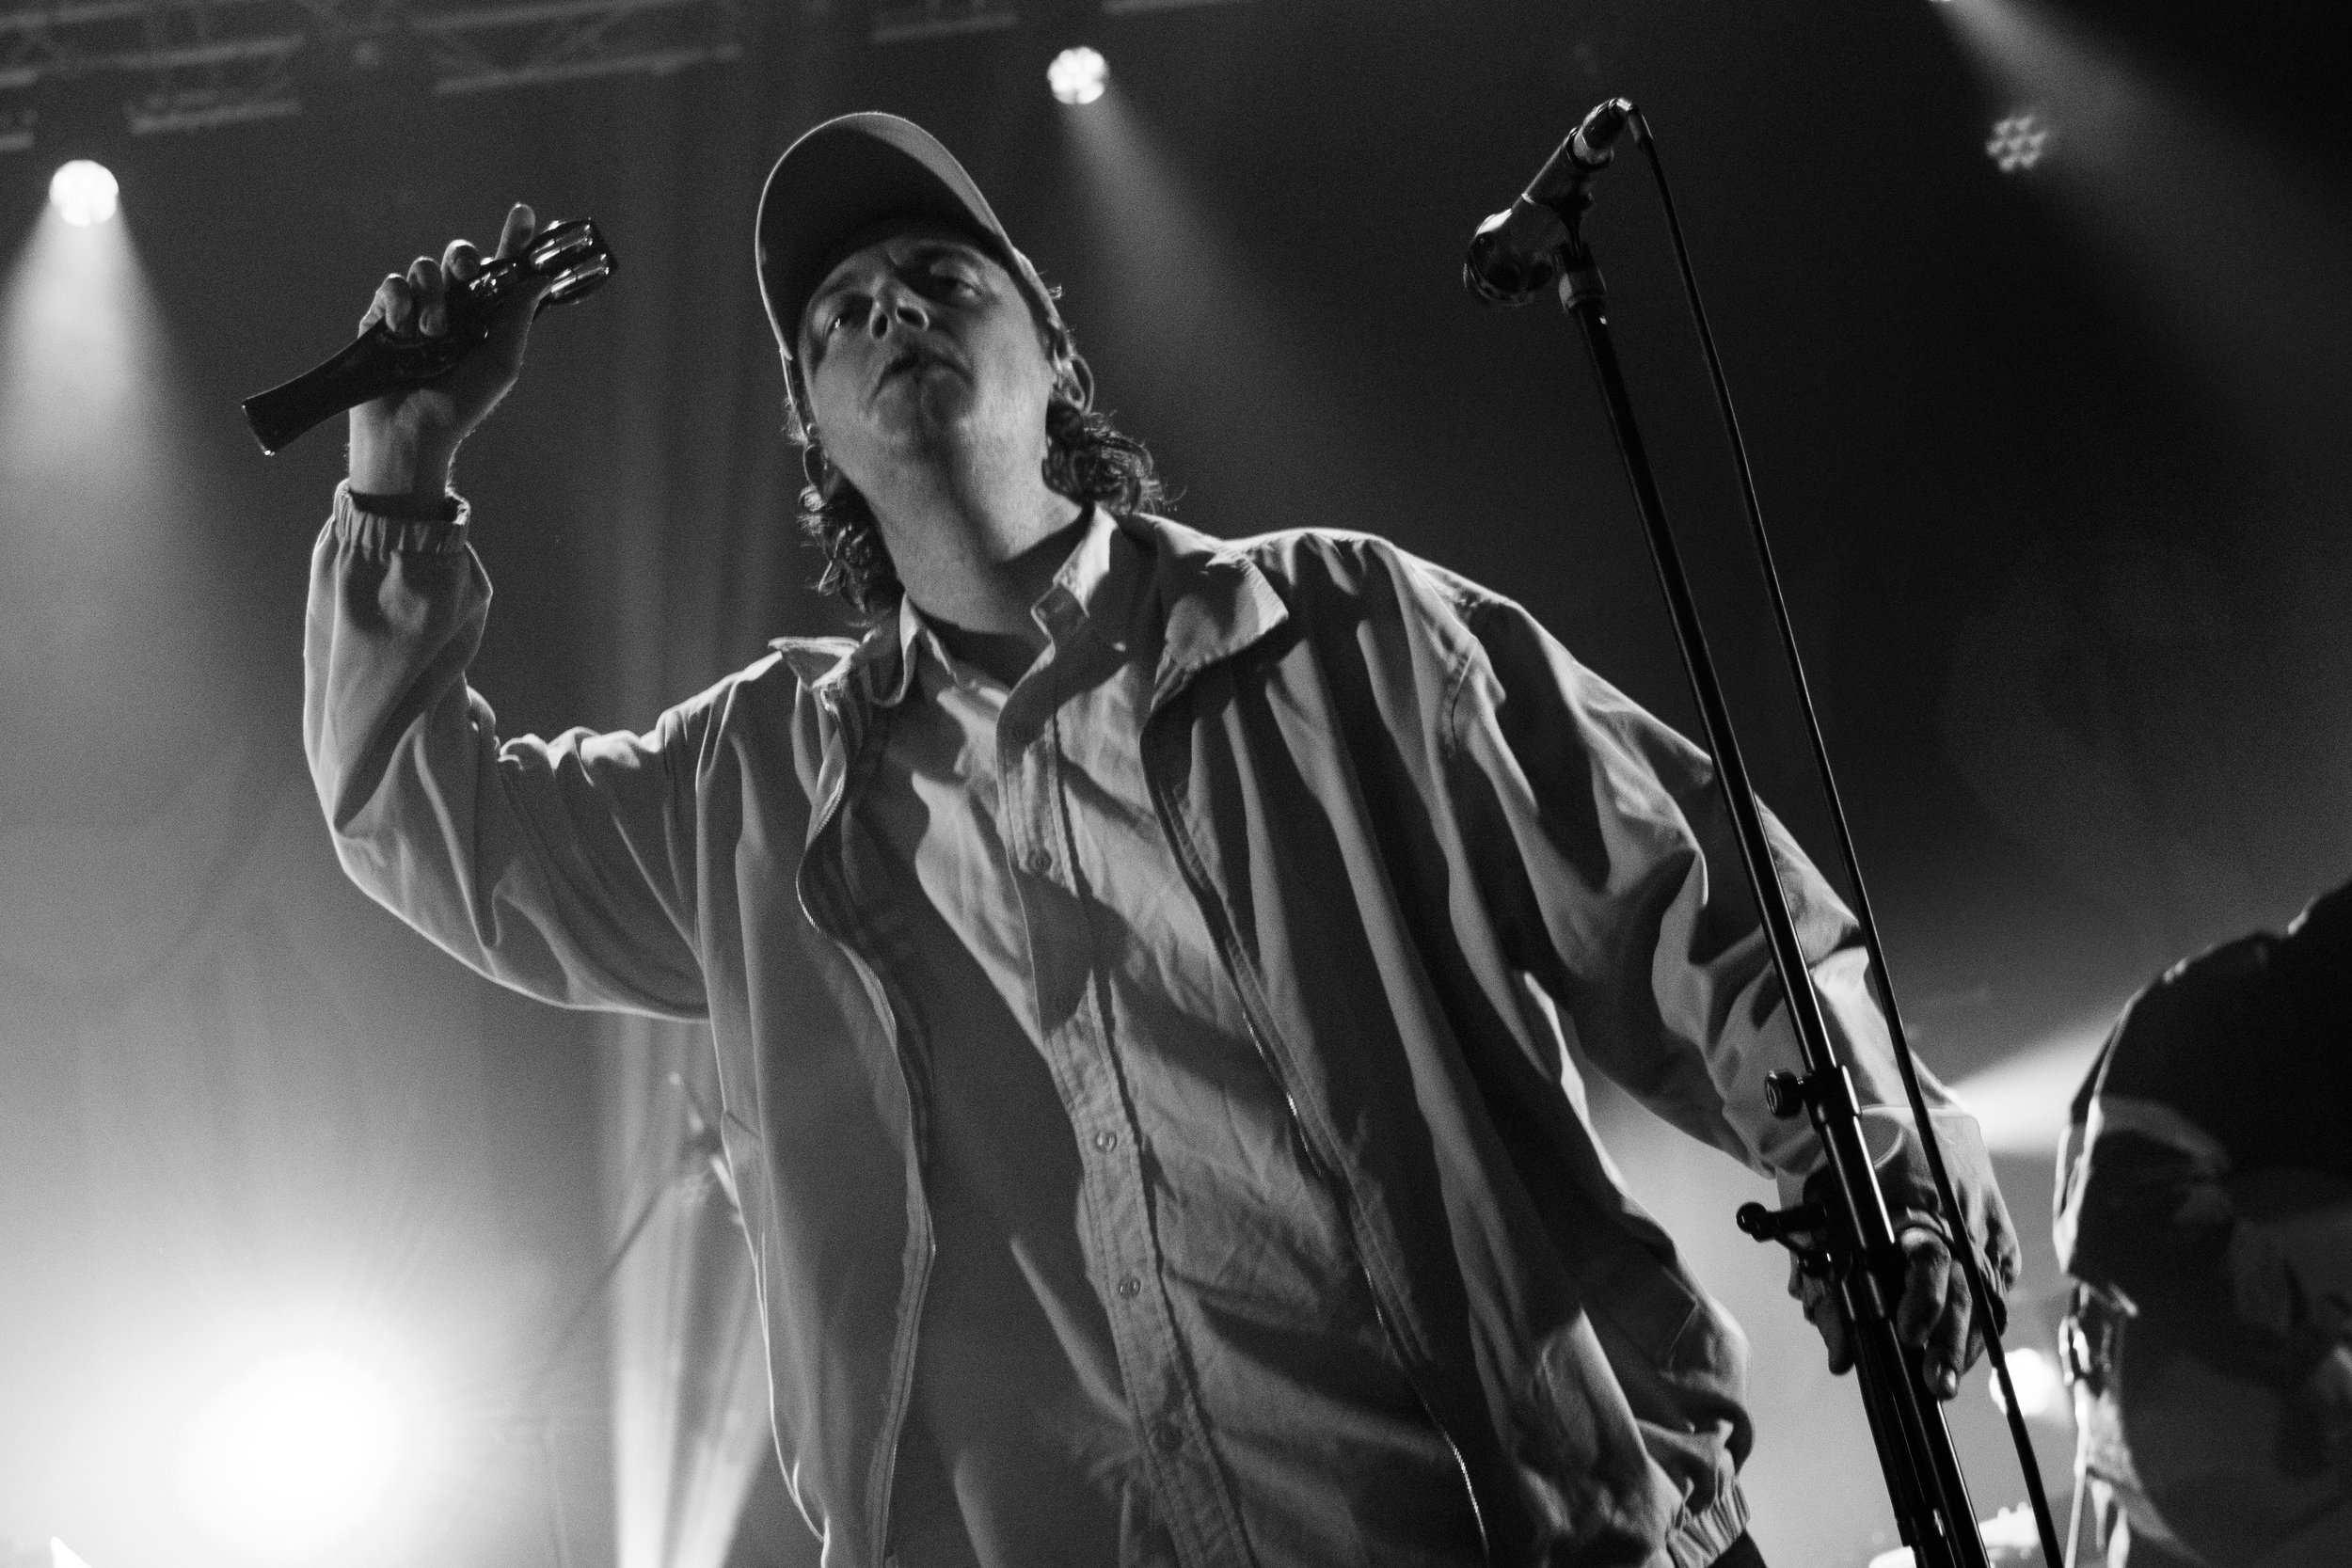 DMAs - O2 Academy , Newcastle - 10-04-19 Picture by Will Gorman Photo-5658.JPG